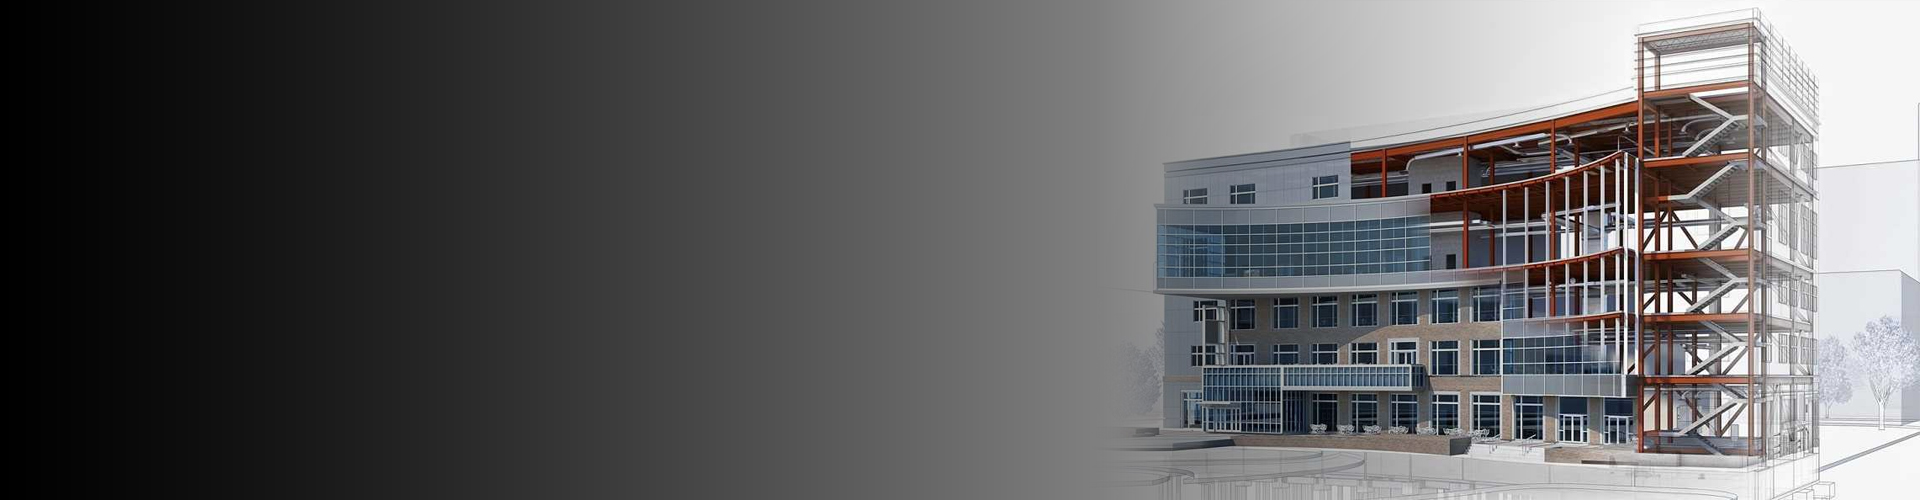 Get 3D BIM Modeling Outsourcing Services